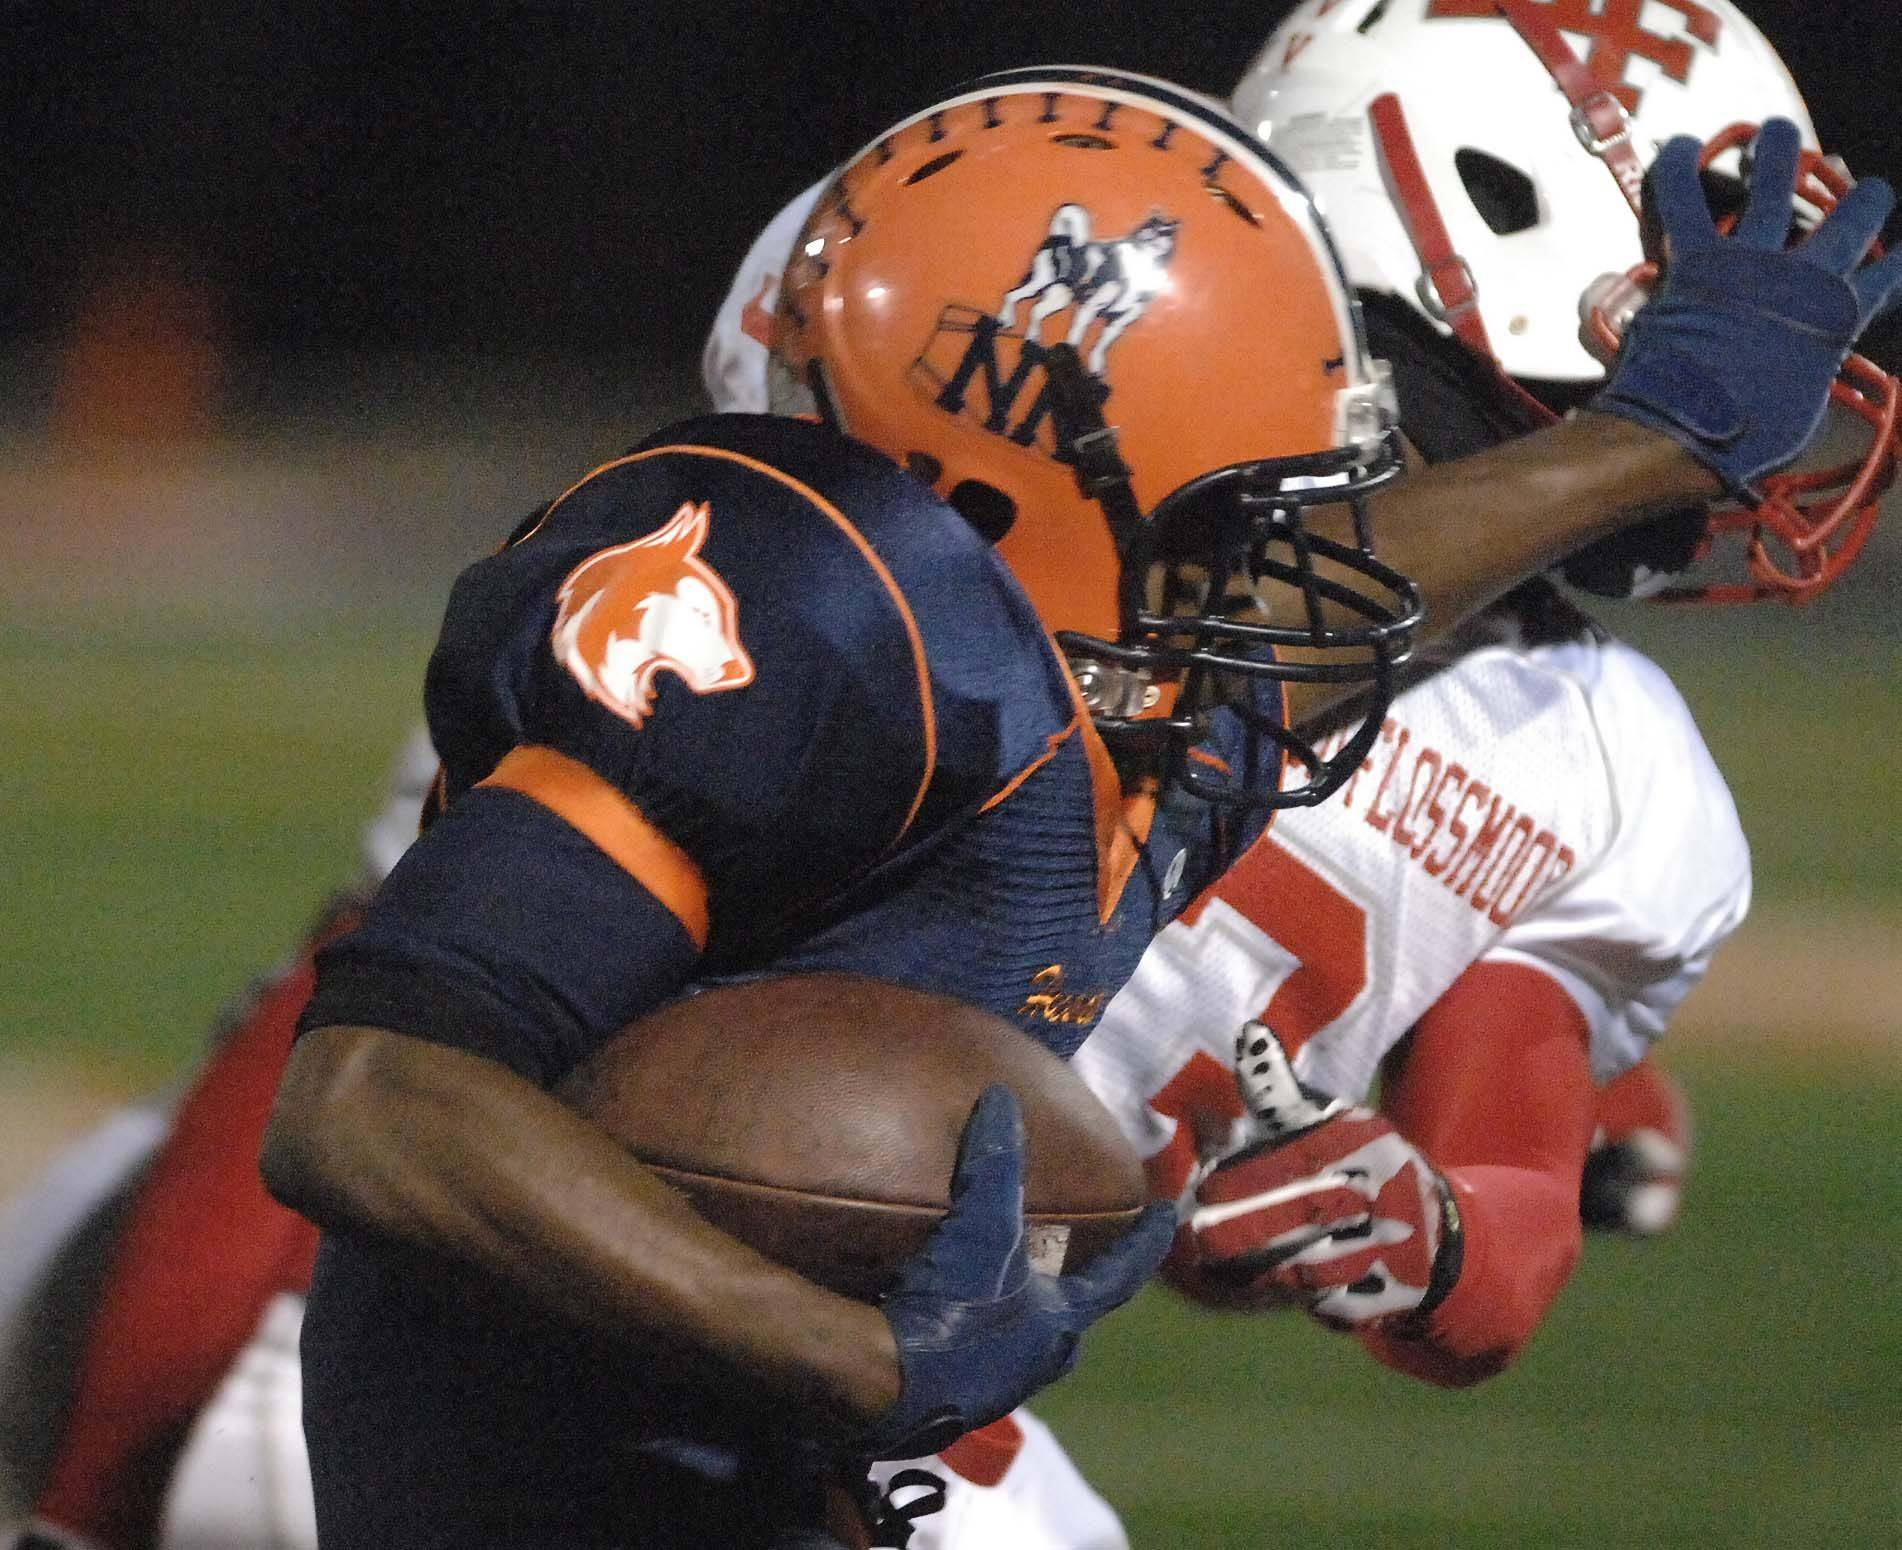 Tarrell Tucker of Homewood-Flossmoor is pushed out of the way by Antonio Owens of Naperville North .